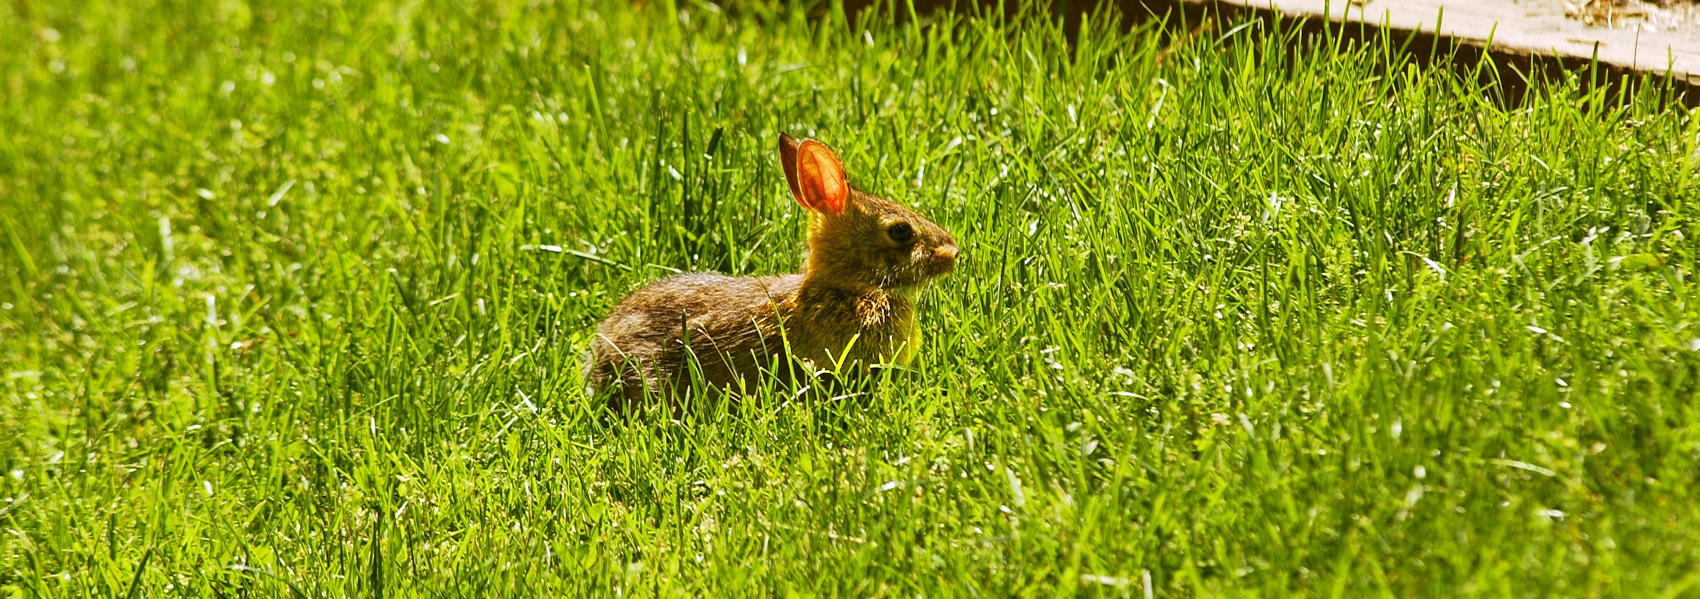 A rabbit stands in a patch of grass